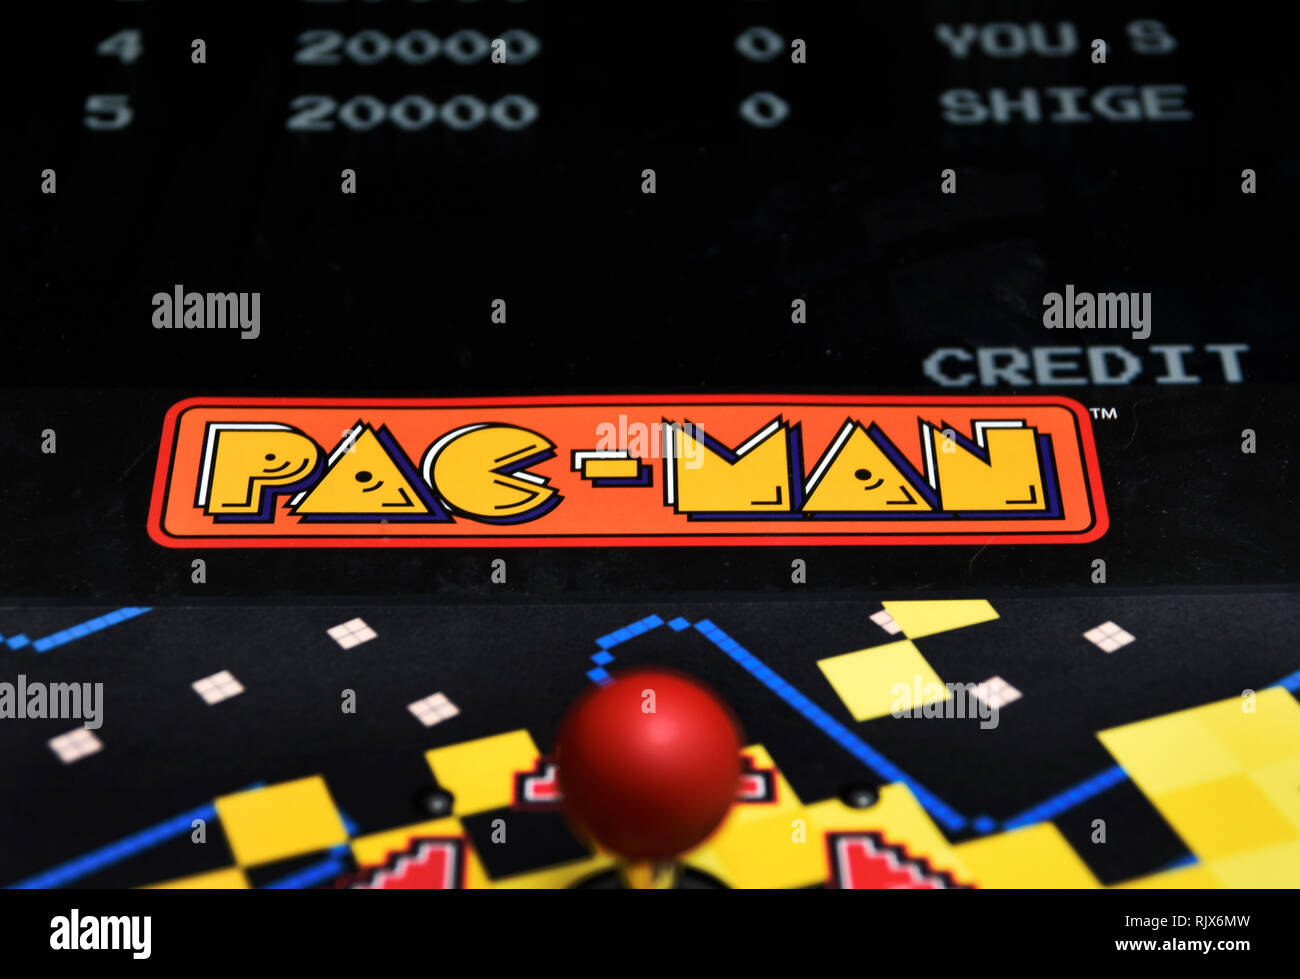 Detail of Pac-Man arcade machine in a mall in USA - Stock Image